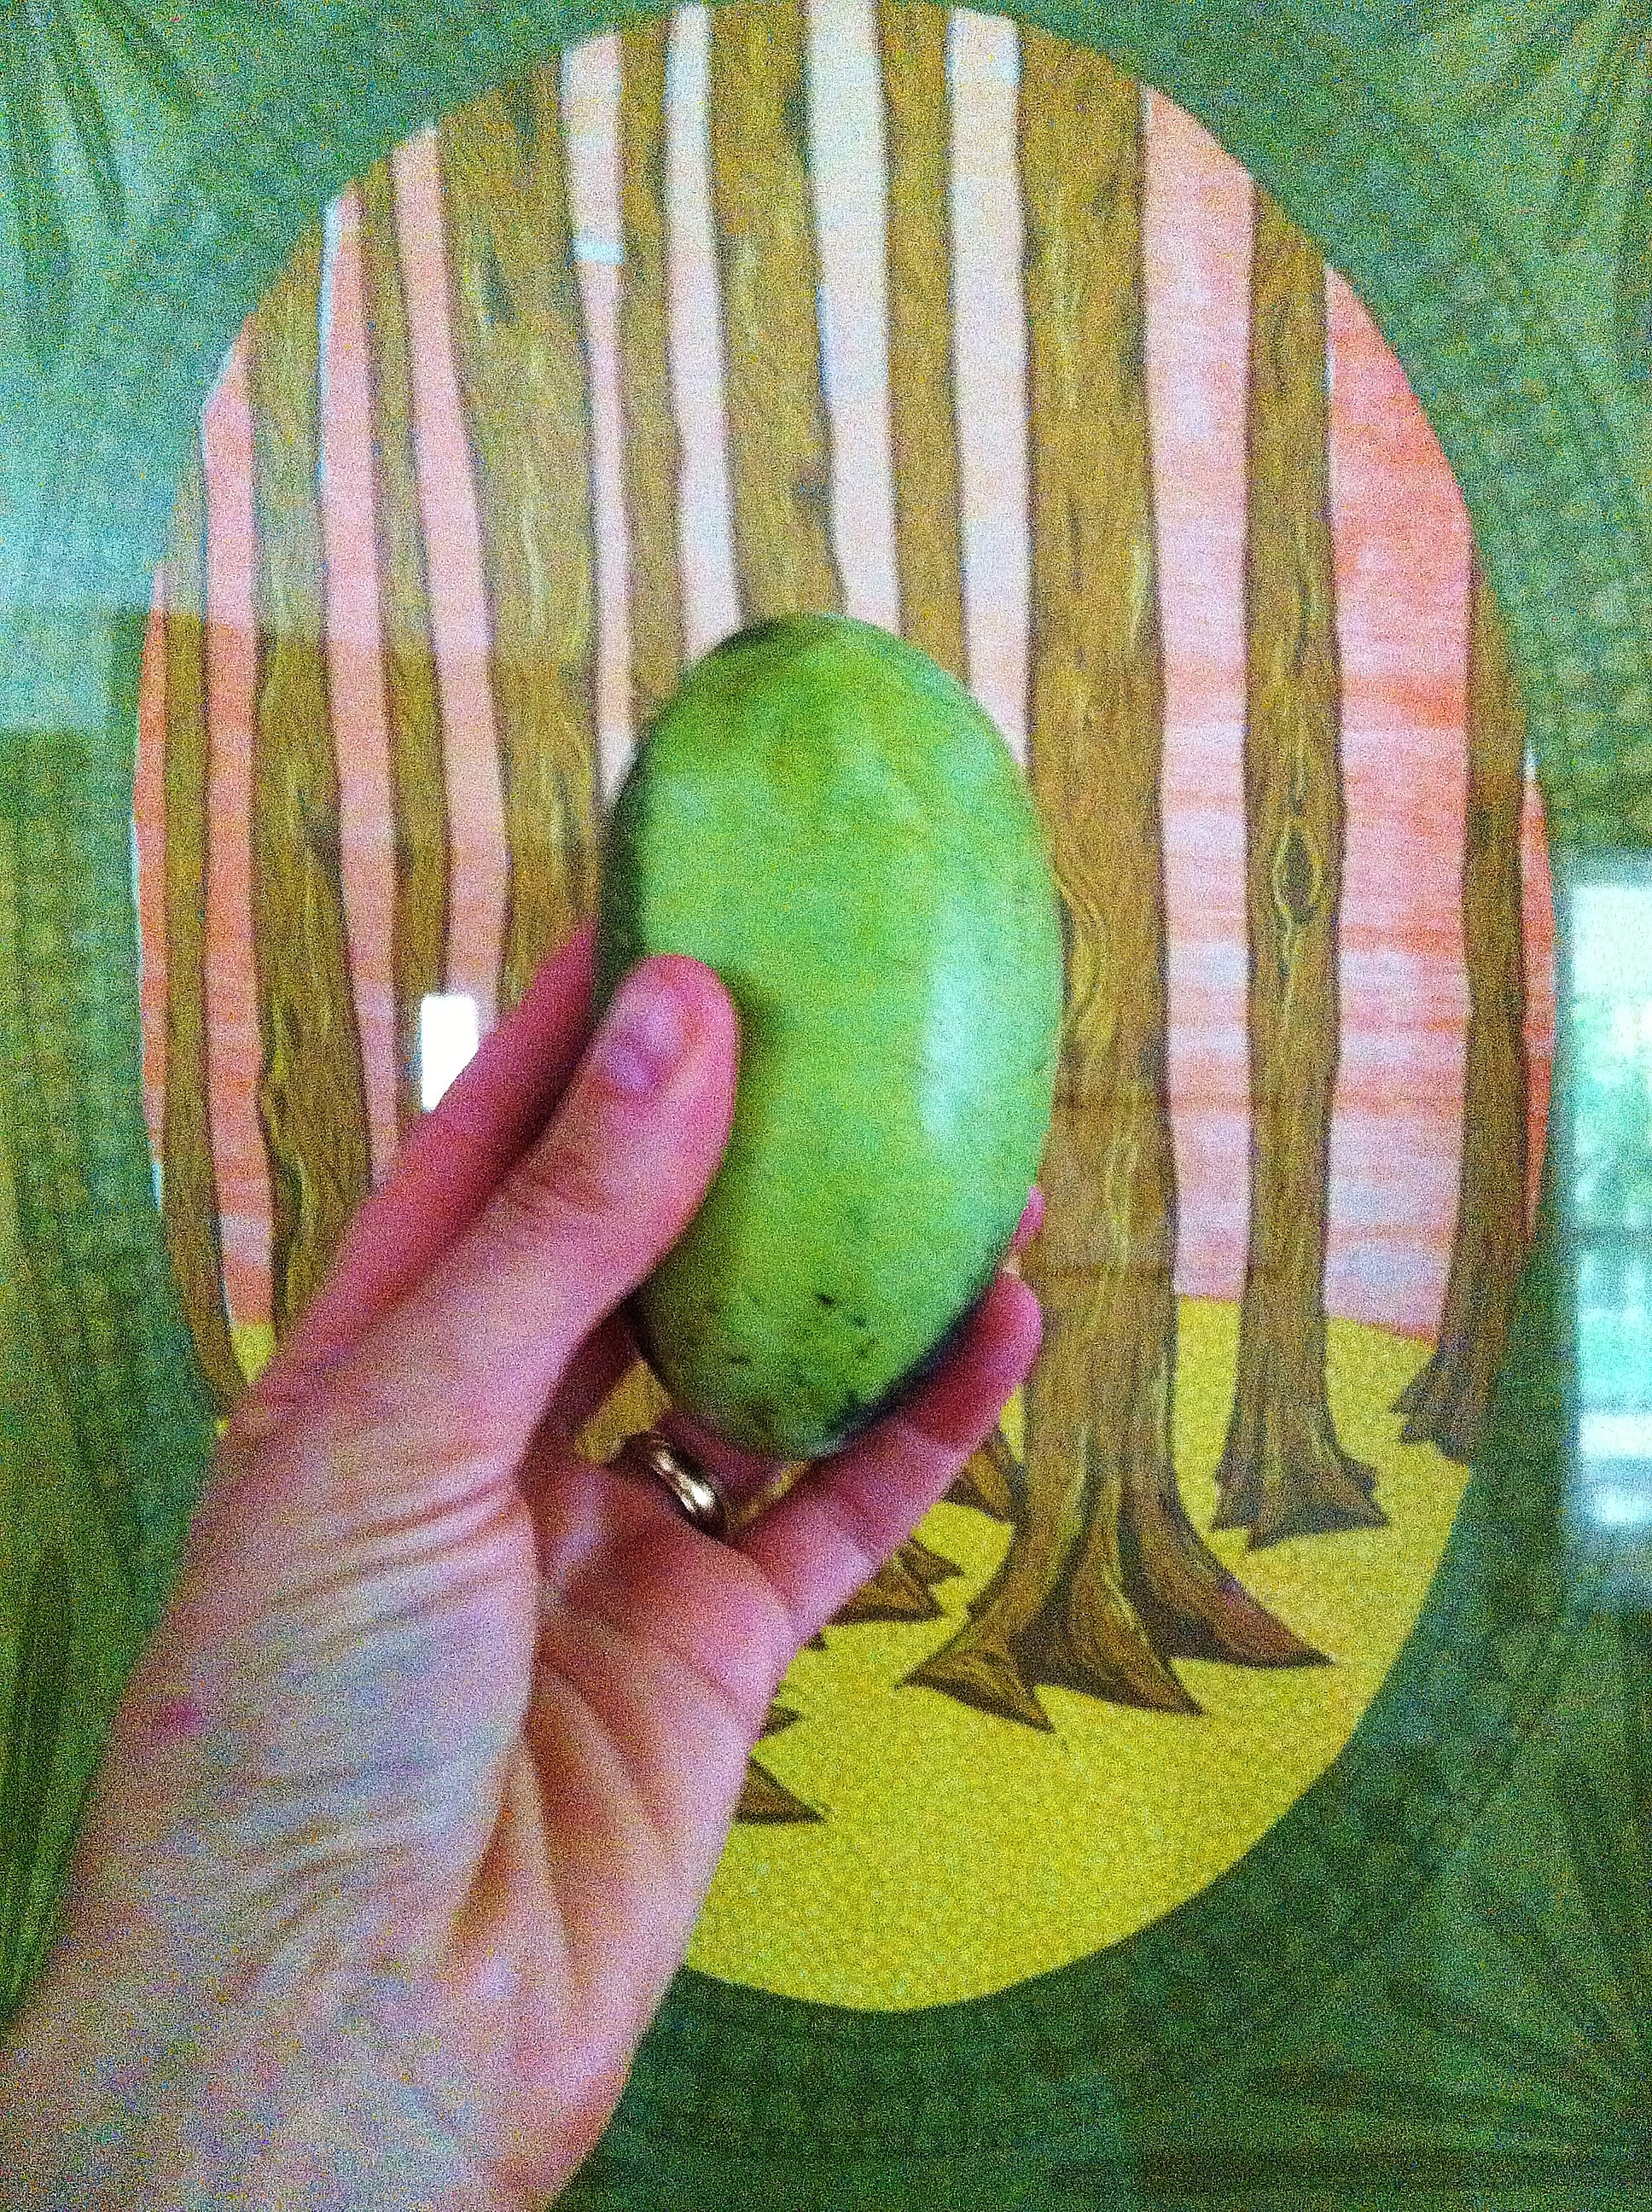 It may not look like much on this screen, but this pawpaw is the centerfold of wild pawpaws.